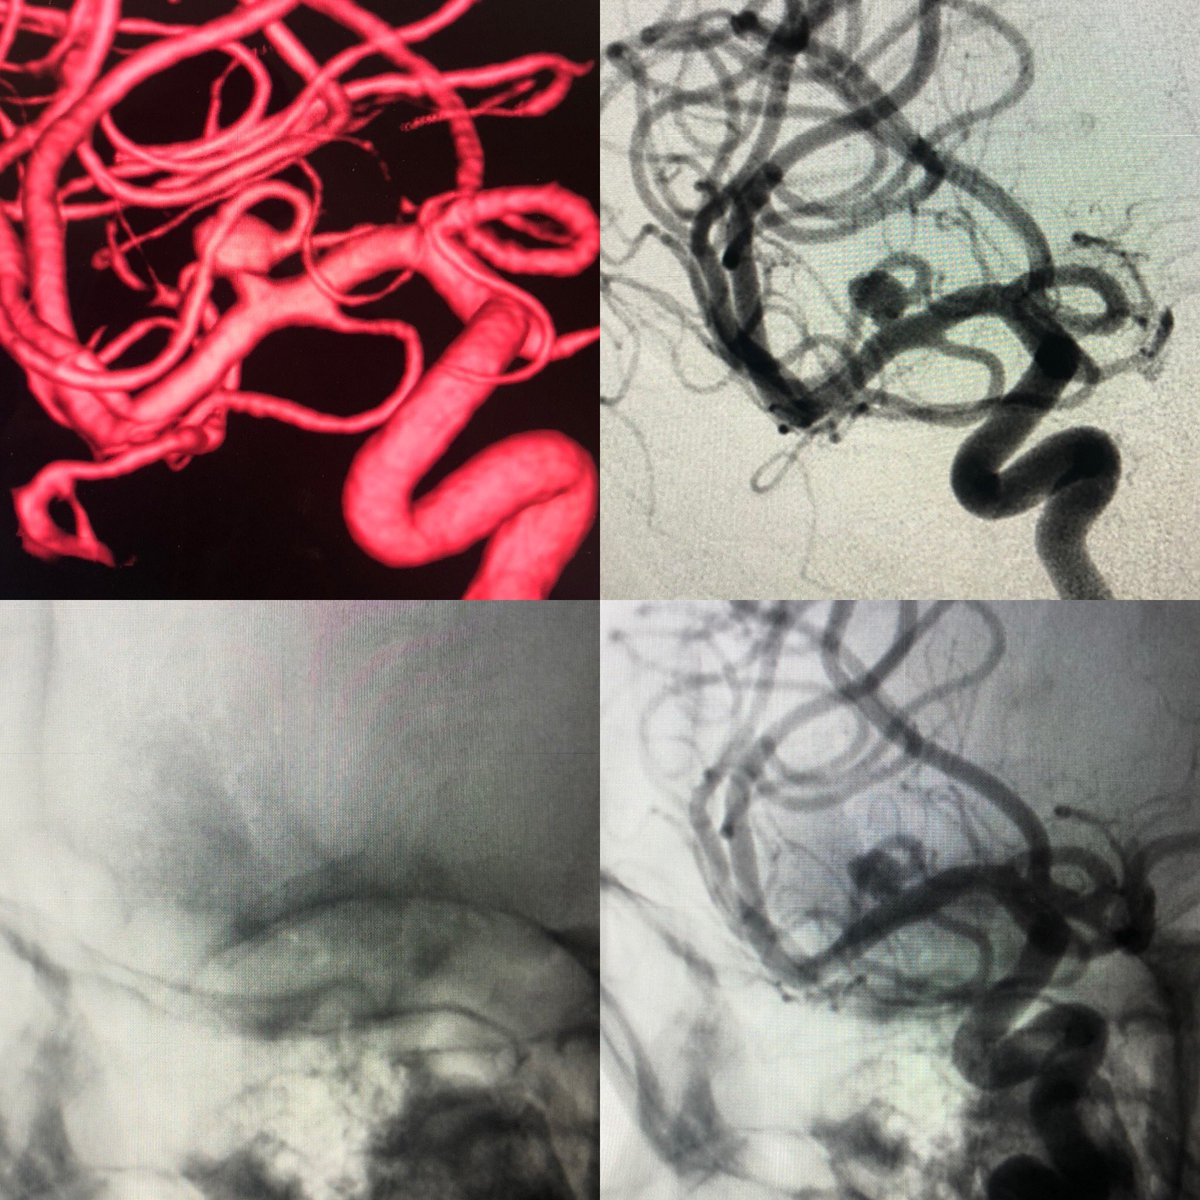 Total of 5 well succeeded procedures performed with P48 HPC  FD using mono-antiagregation with 100mg of aspirin. We are very honored to start this clinical study in Brazil. #phenox #usp #fmrp #aneurysm